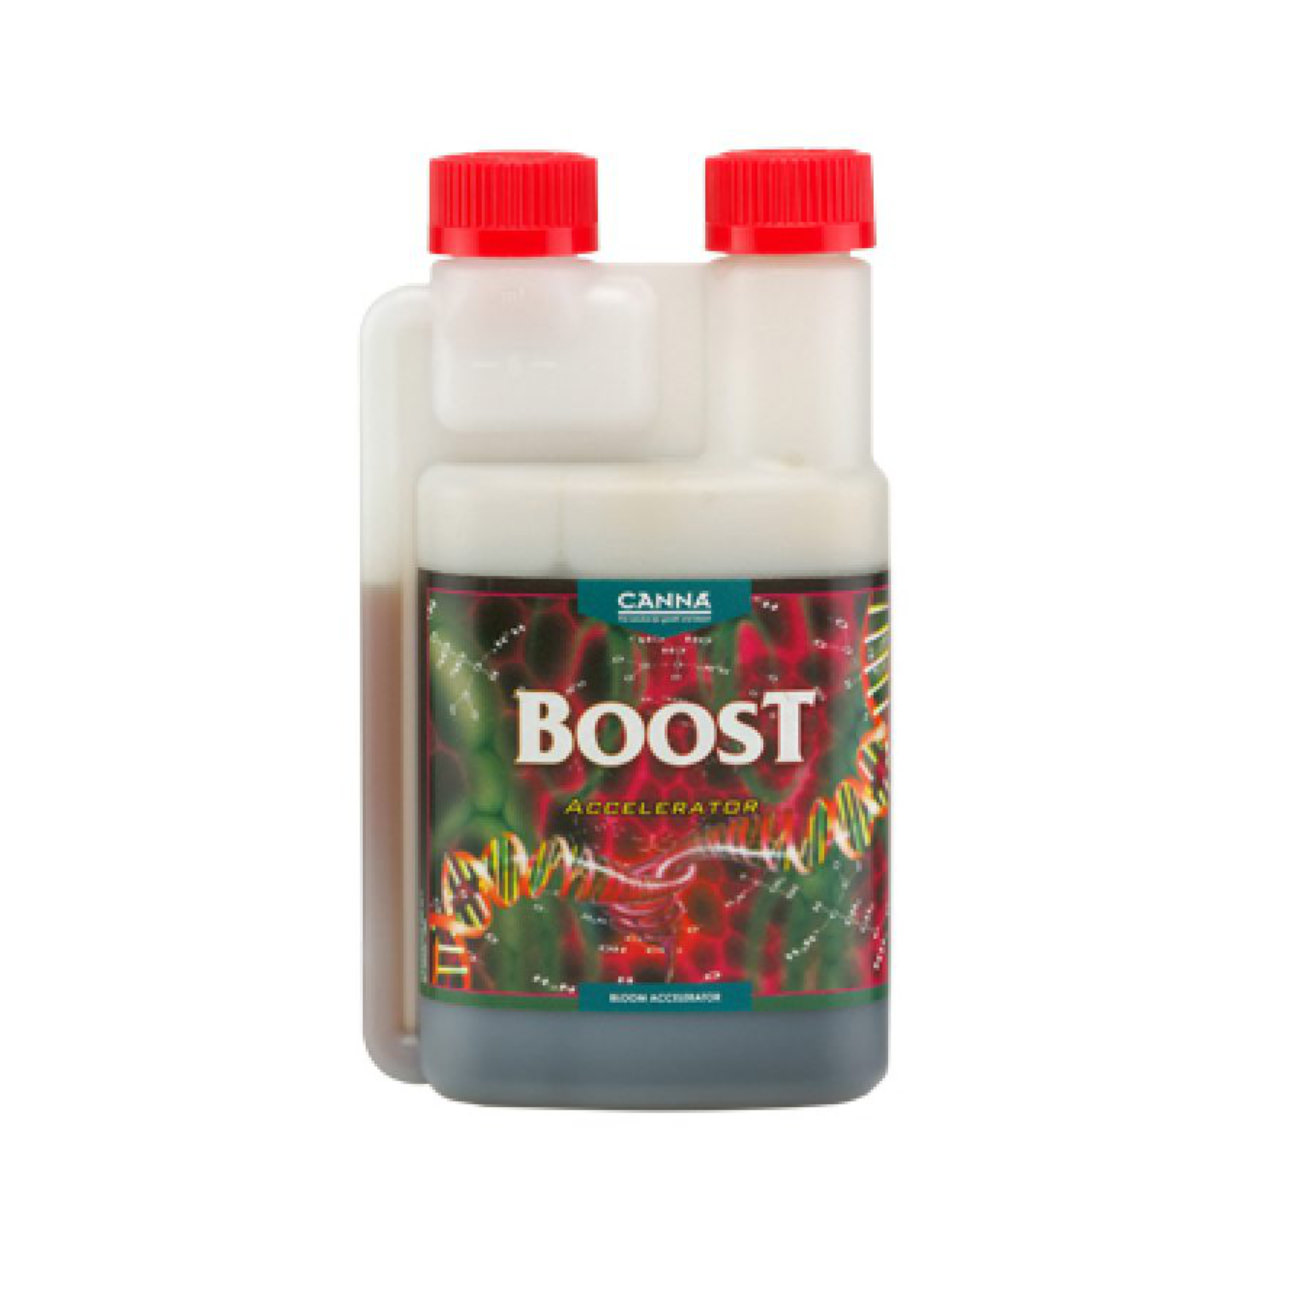 Canna Boost Accelerator - Flower Booster